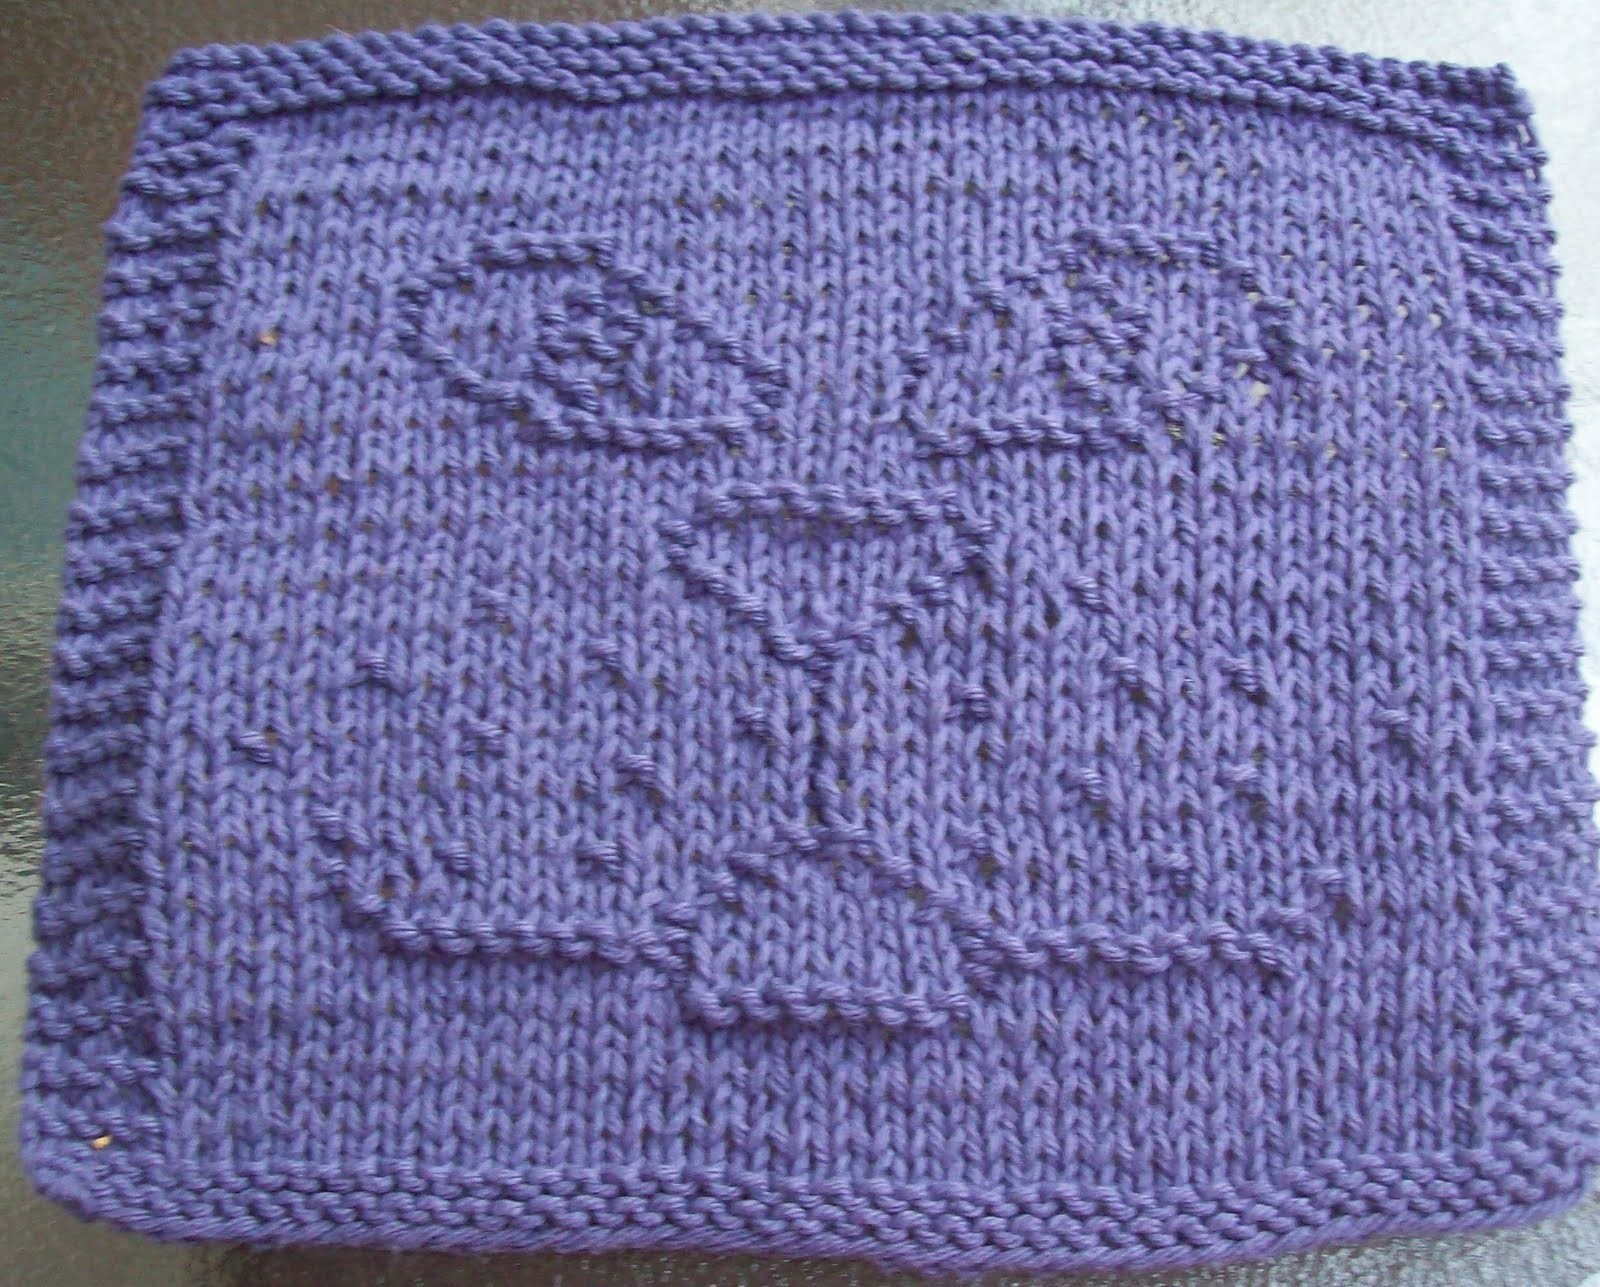 Free Knitted Dishcloth Pattern Free Knitted Dishcloth Patterns Designs Crochet And Knit Diamond